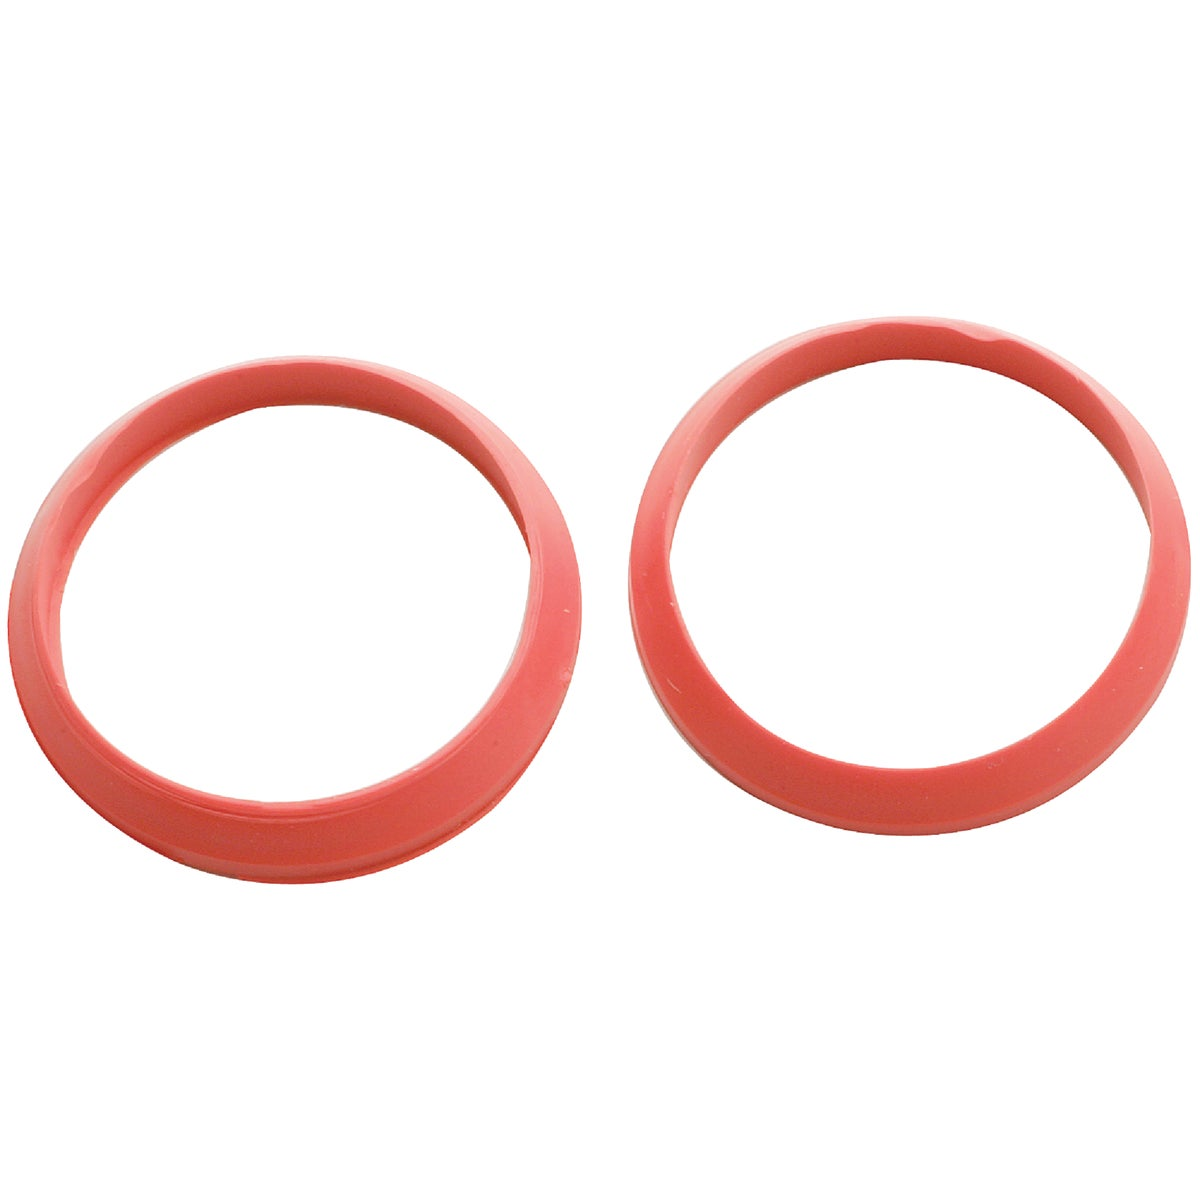 2PK 1-1/4 RBR S/J WASHER